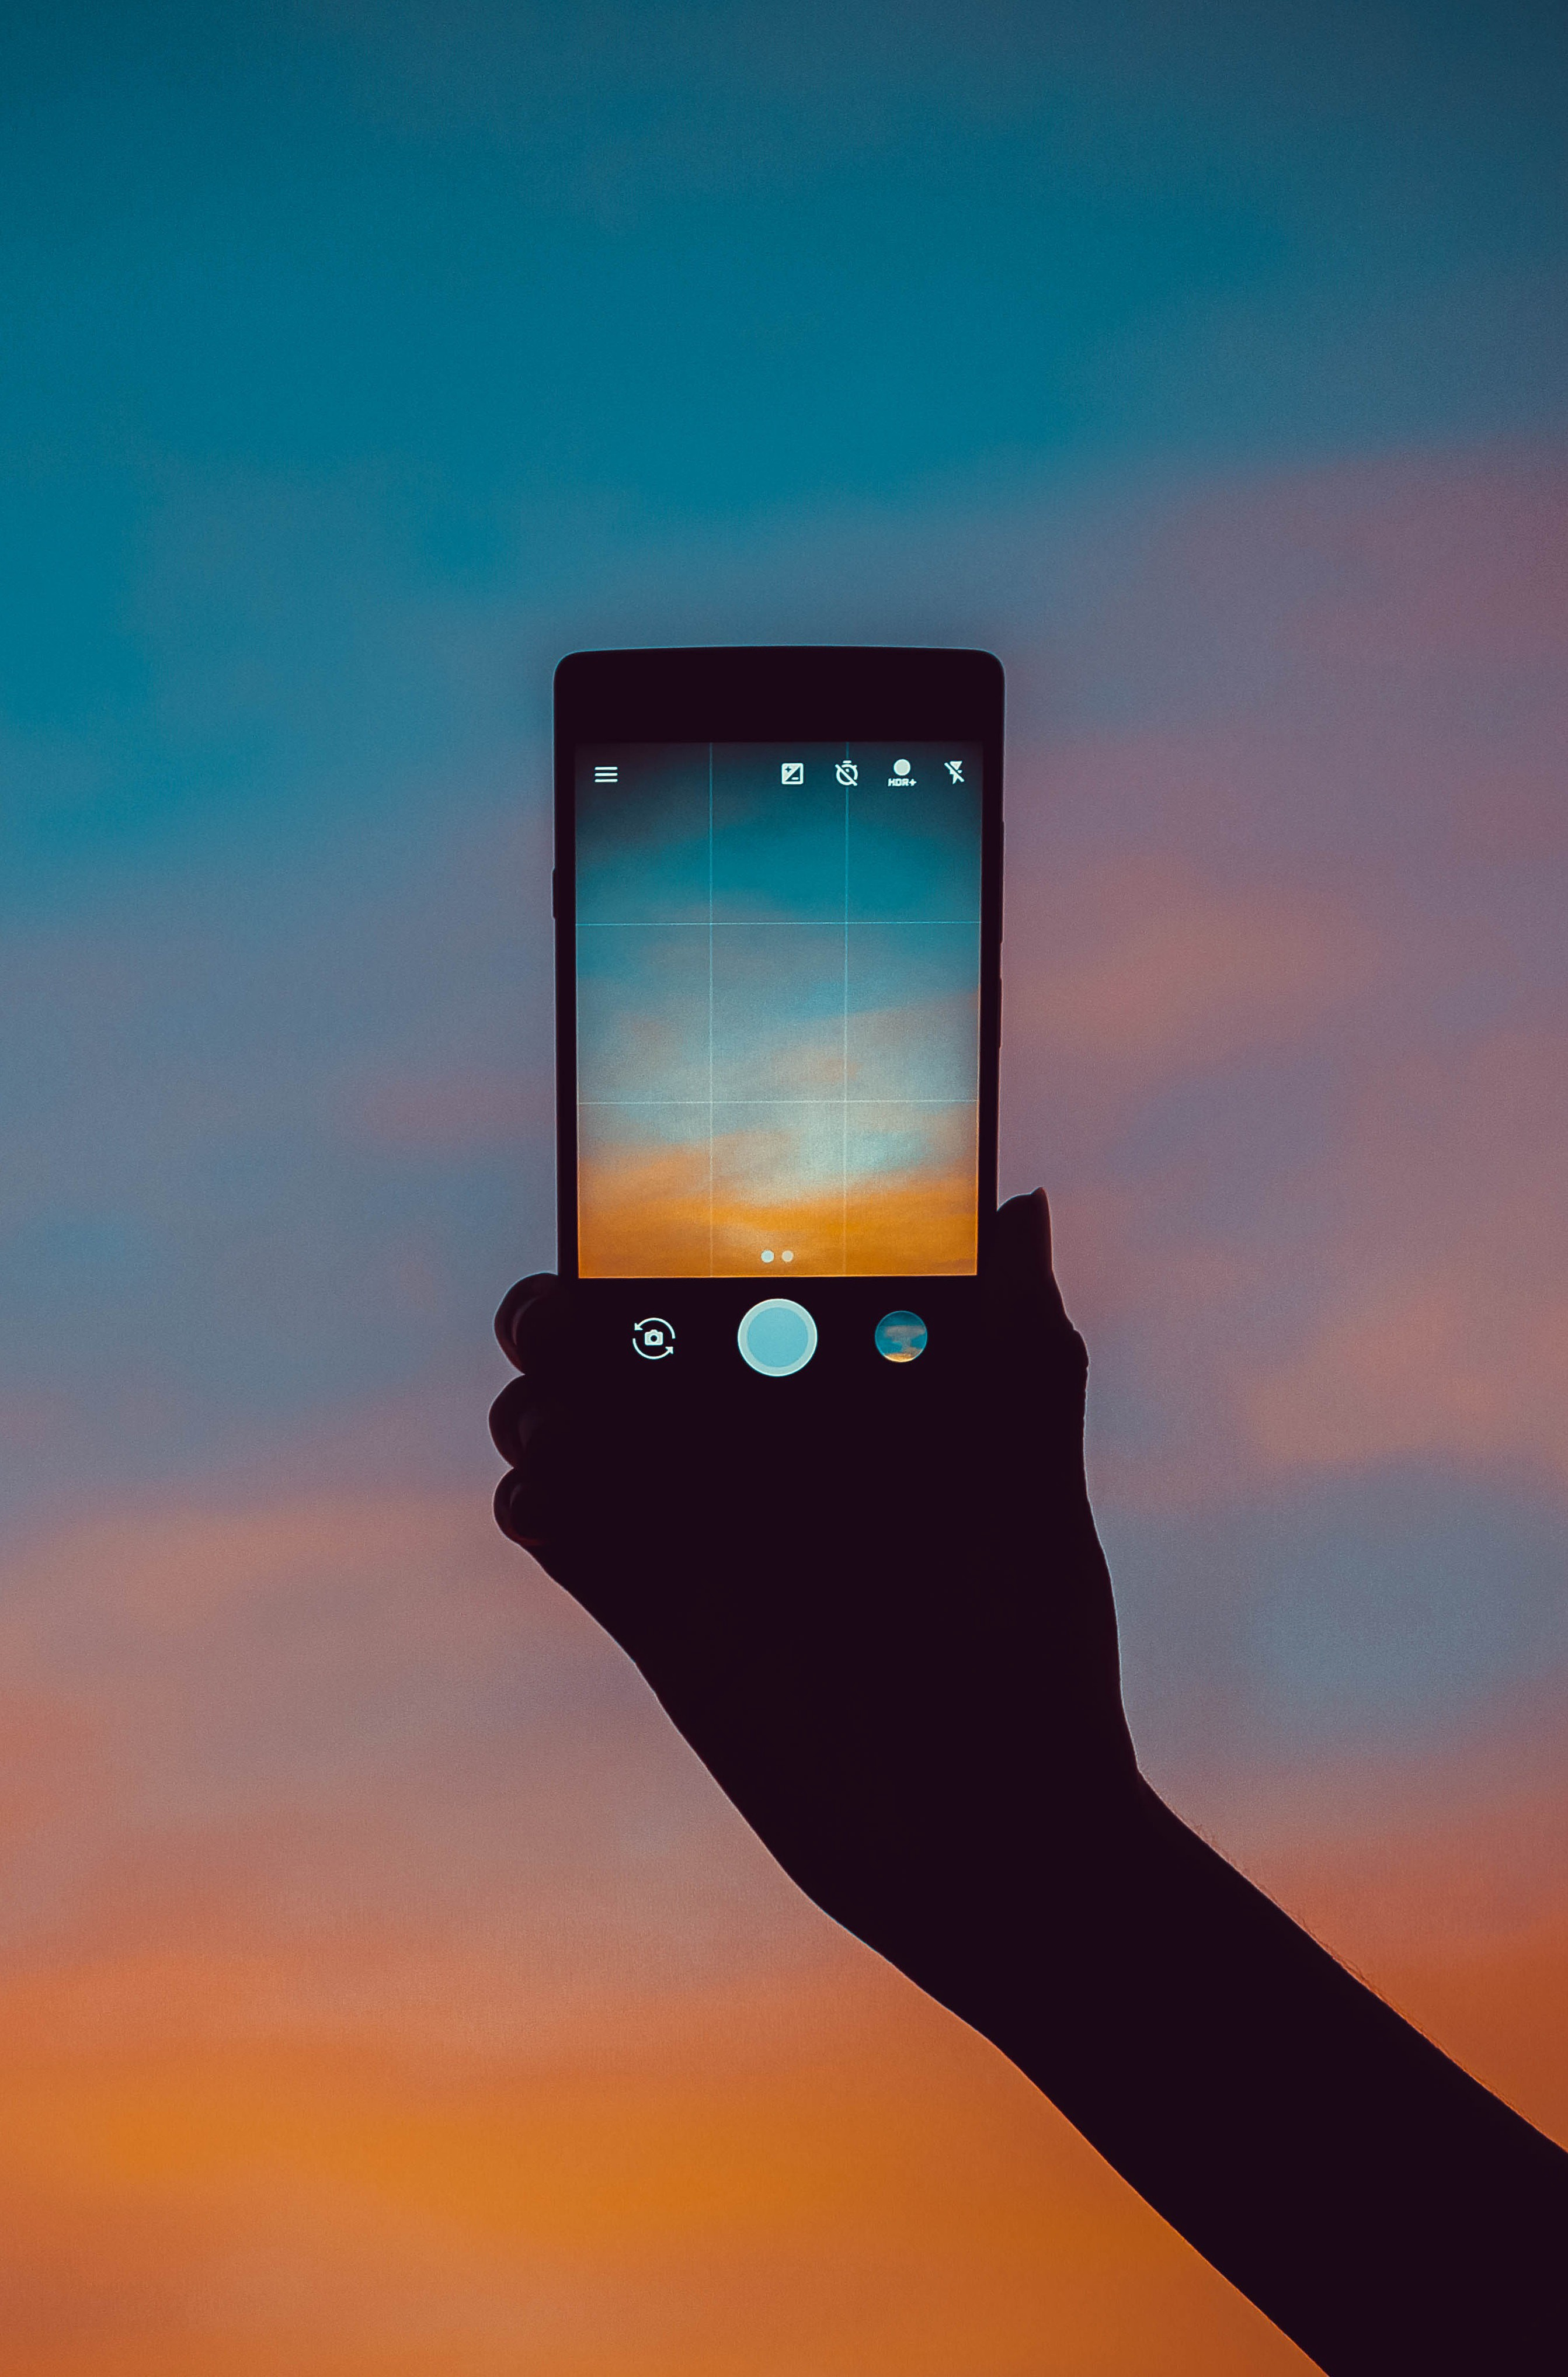 Implementing camera feature in Flutter - Flutter Community